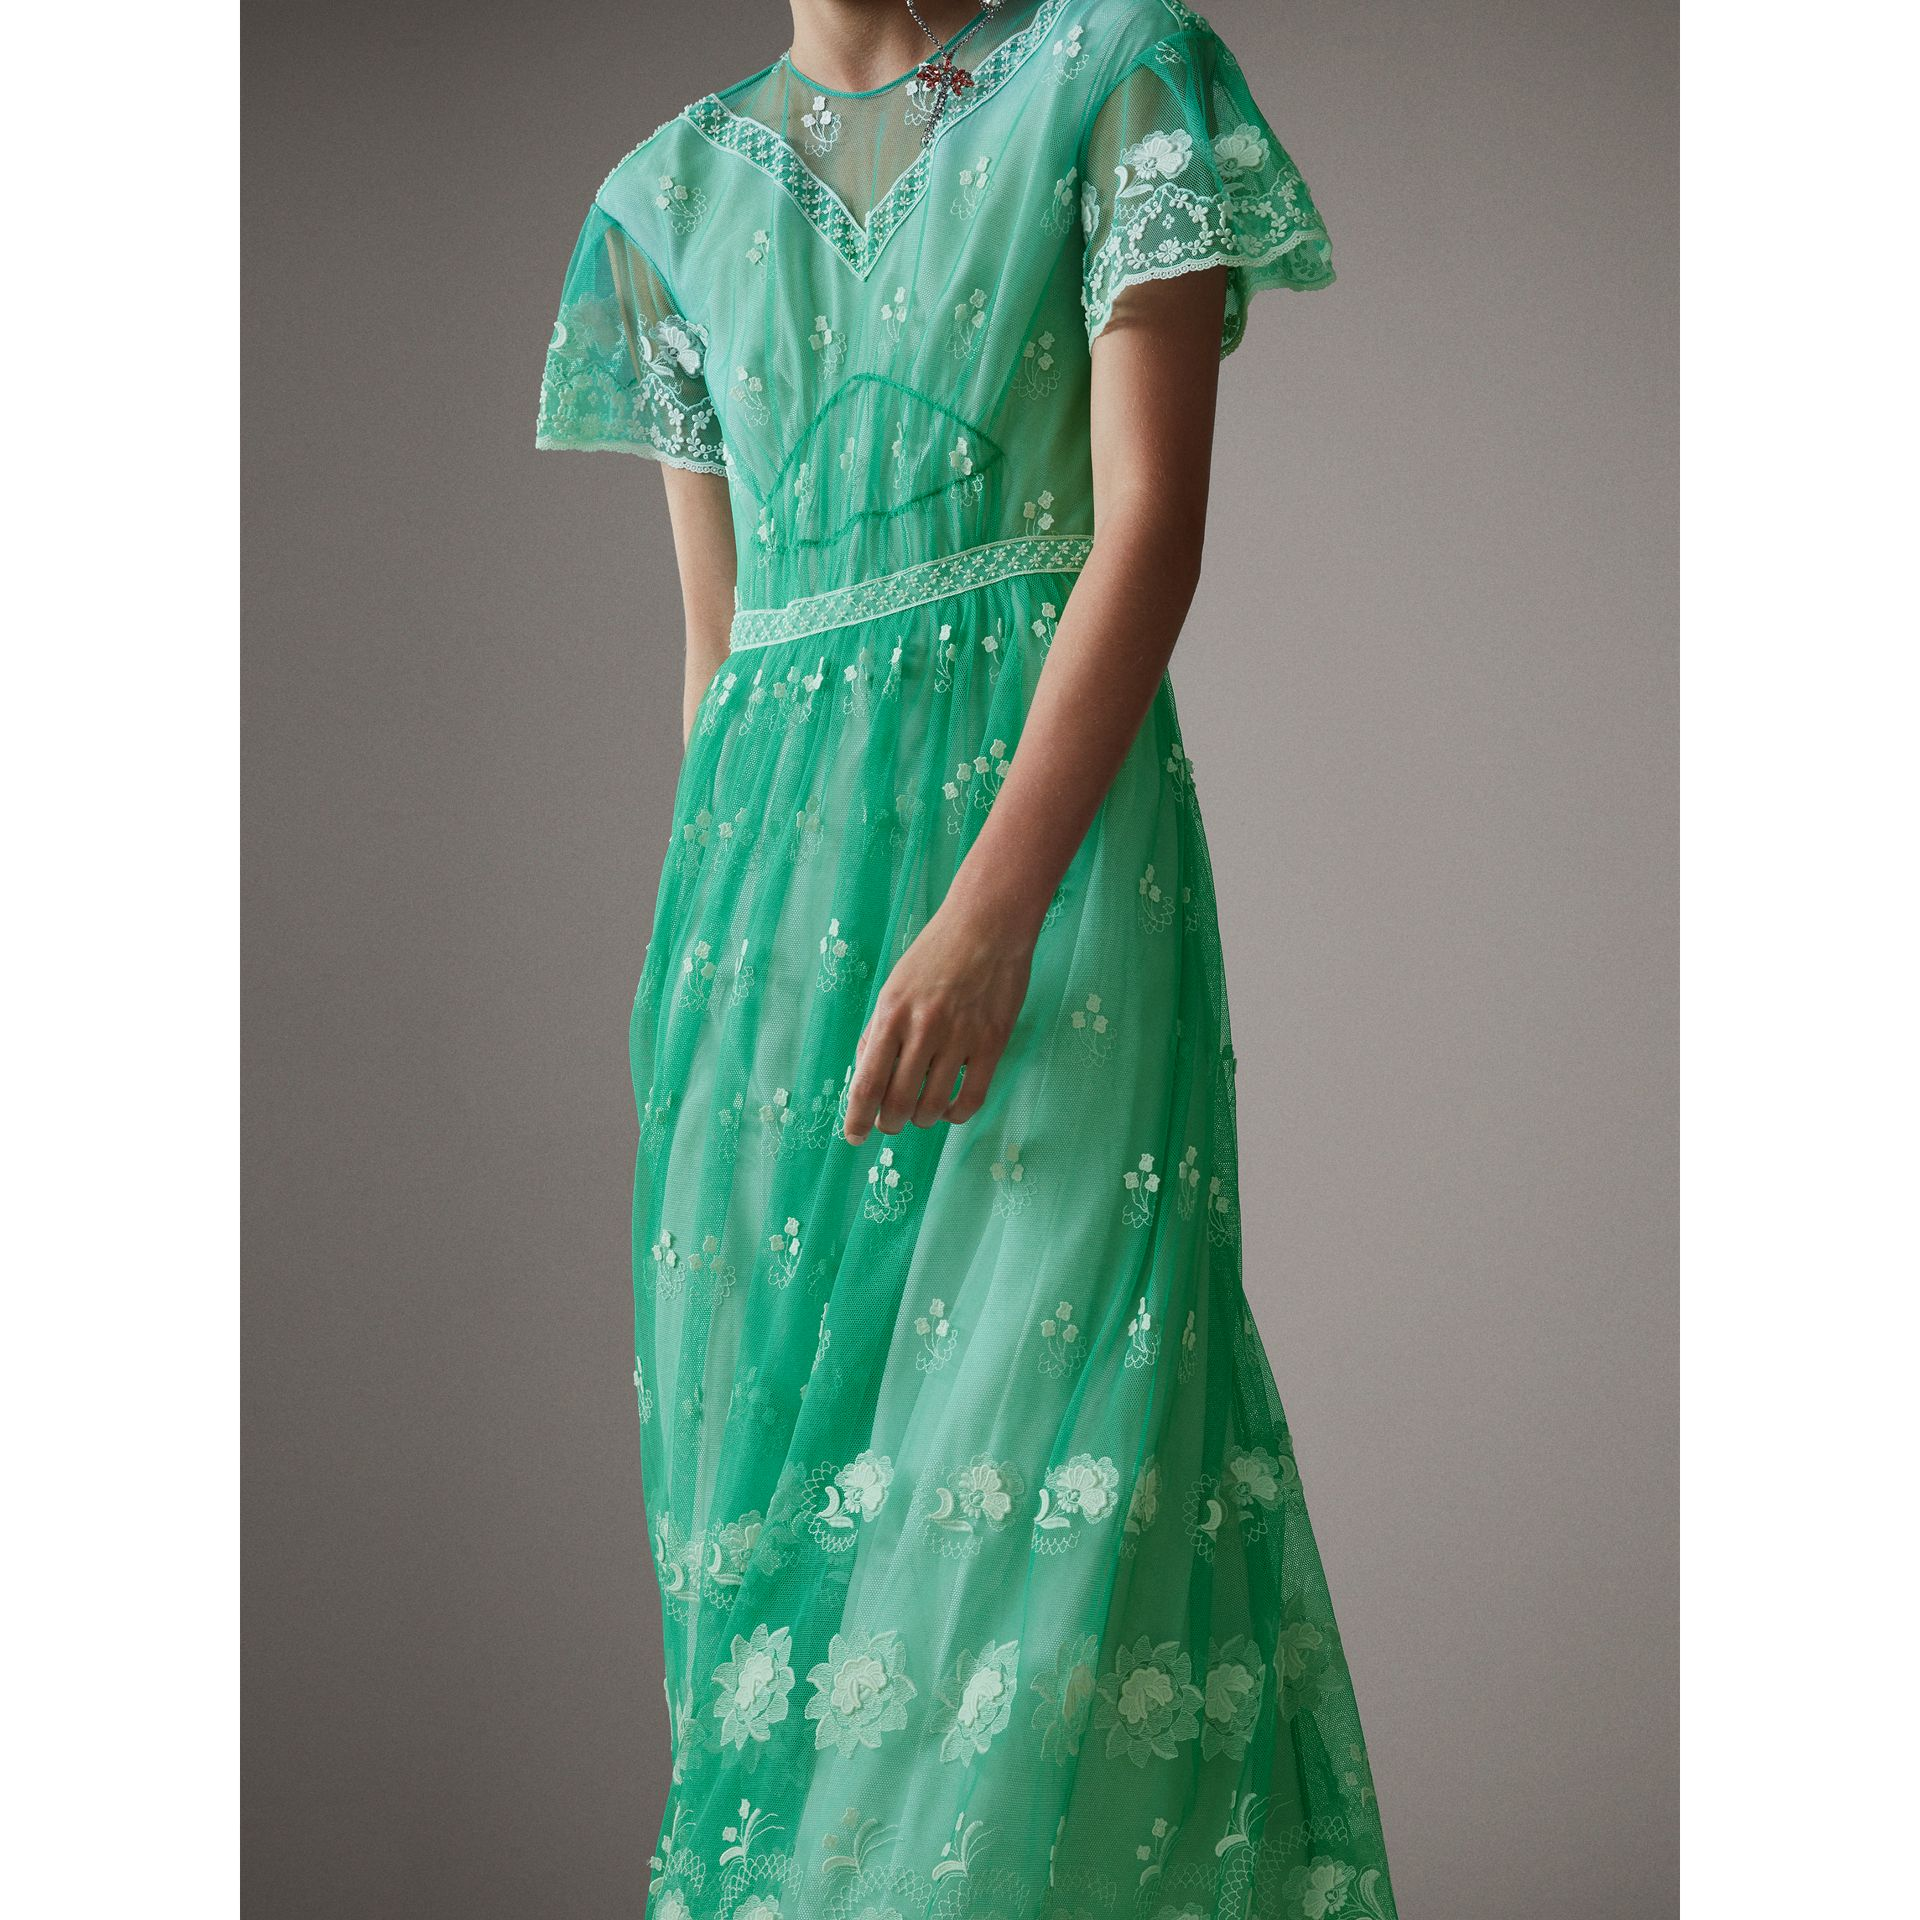 Embroidered Tulle Gathered Dress in Aqua Green/white - Women | Burberry - gallery image 1